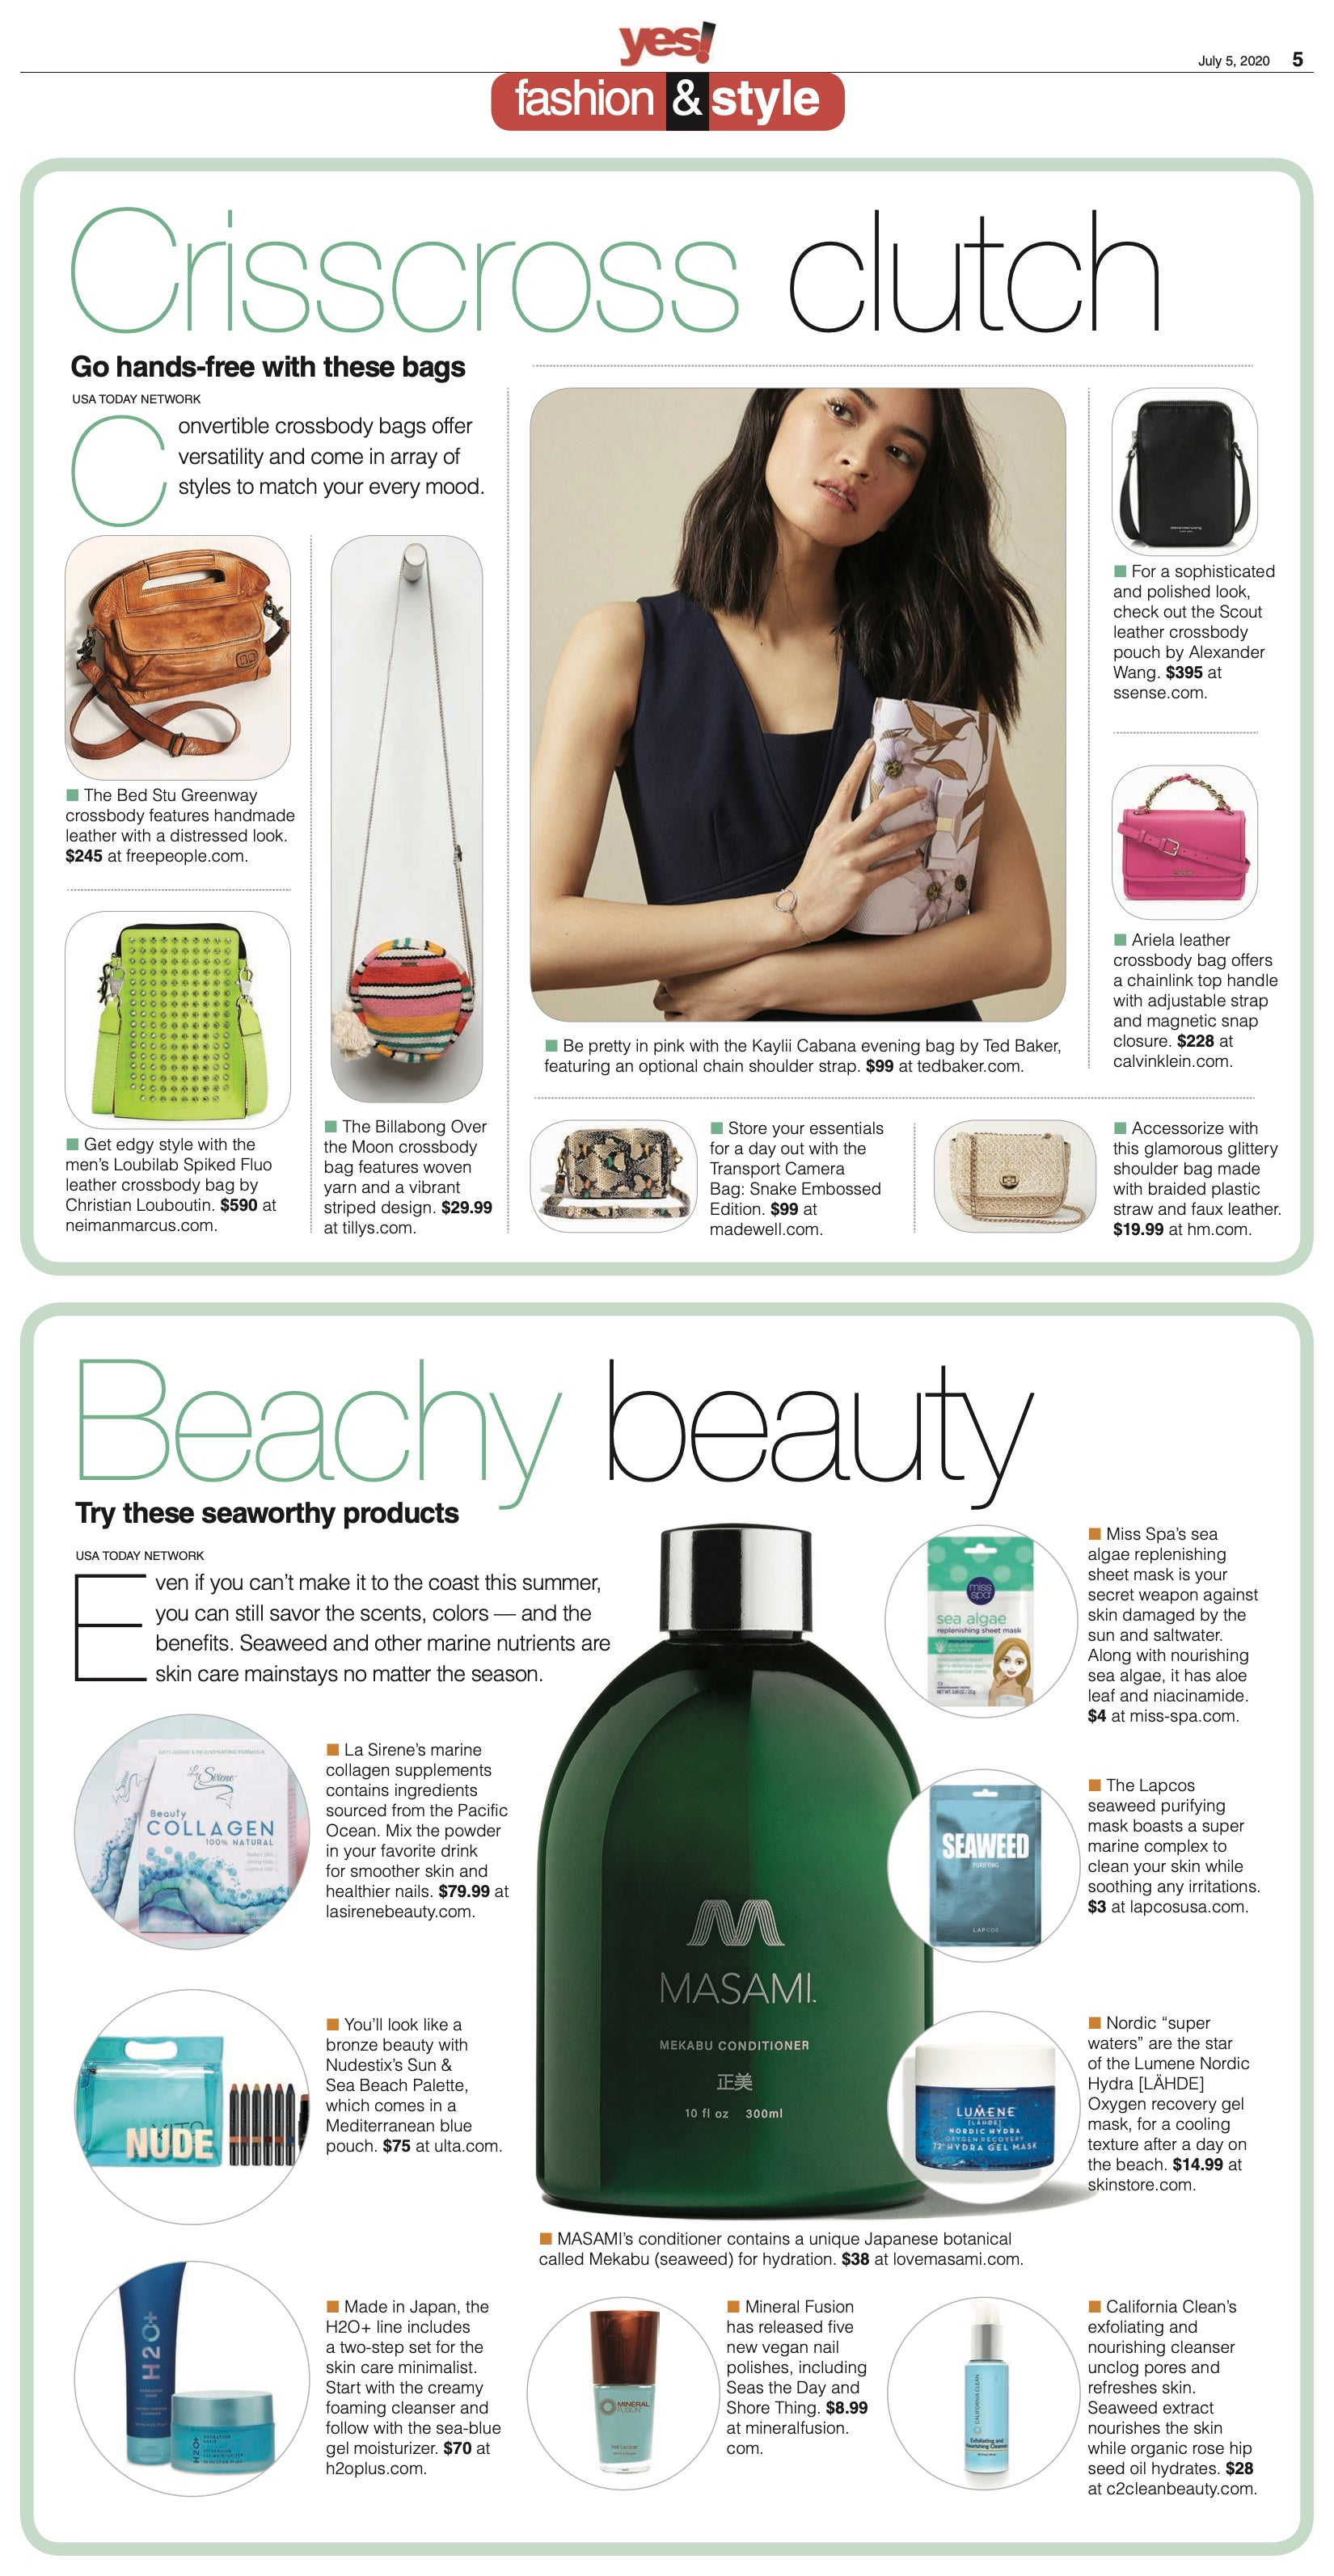 La Sirene Beauty Marine Collagen feature in Yes Magazine, Beachy Beauty - July 2020